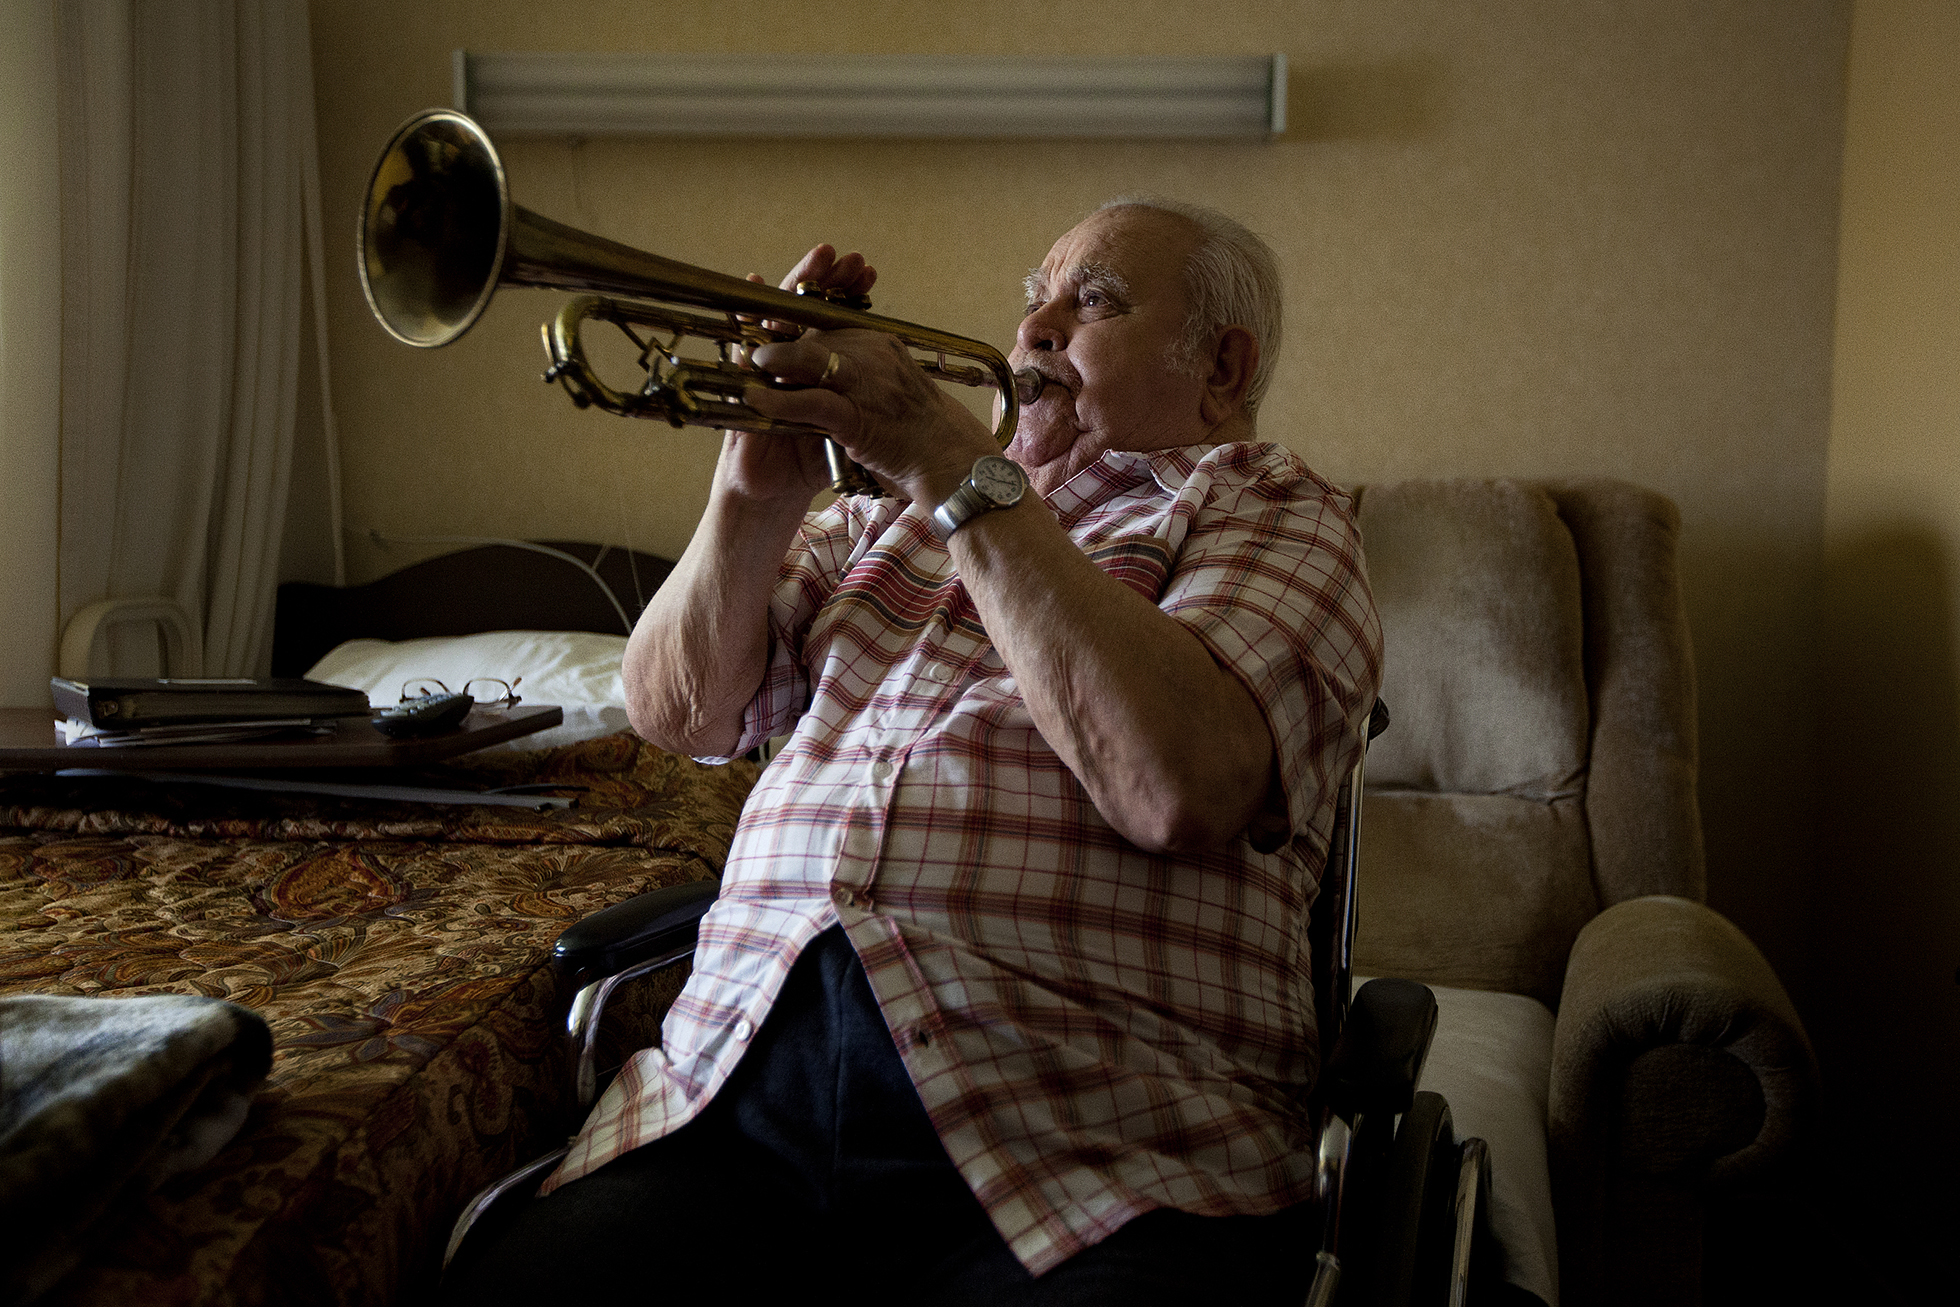 "Ray LaFlamme, 88, says music saved his life. The Jasper resident was drafted into the U.S. Navy after graduating from high school in 1943. After boot camp, all but he and one other person in his company were assigned to the USS Bunker Hill. ""They heard I could play a pretty good trumpet,"" he said. LaFlamme was sent to the U.S. Navy School of Music in Washington, D.C. The aircraft carrier was later attacked, killing many men from LaFlamme's company. LaFlamme still plays his horn as he did in his room at St. Charles Health Campus in Jasper."